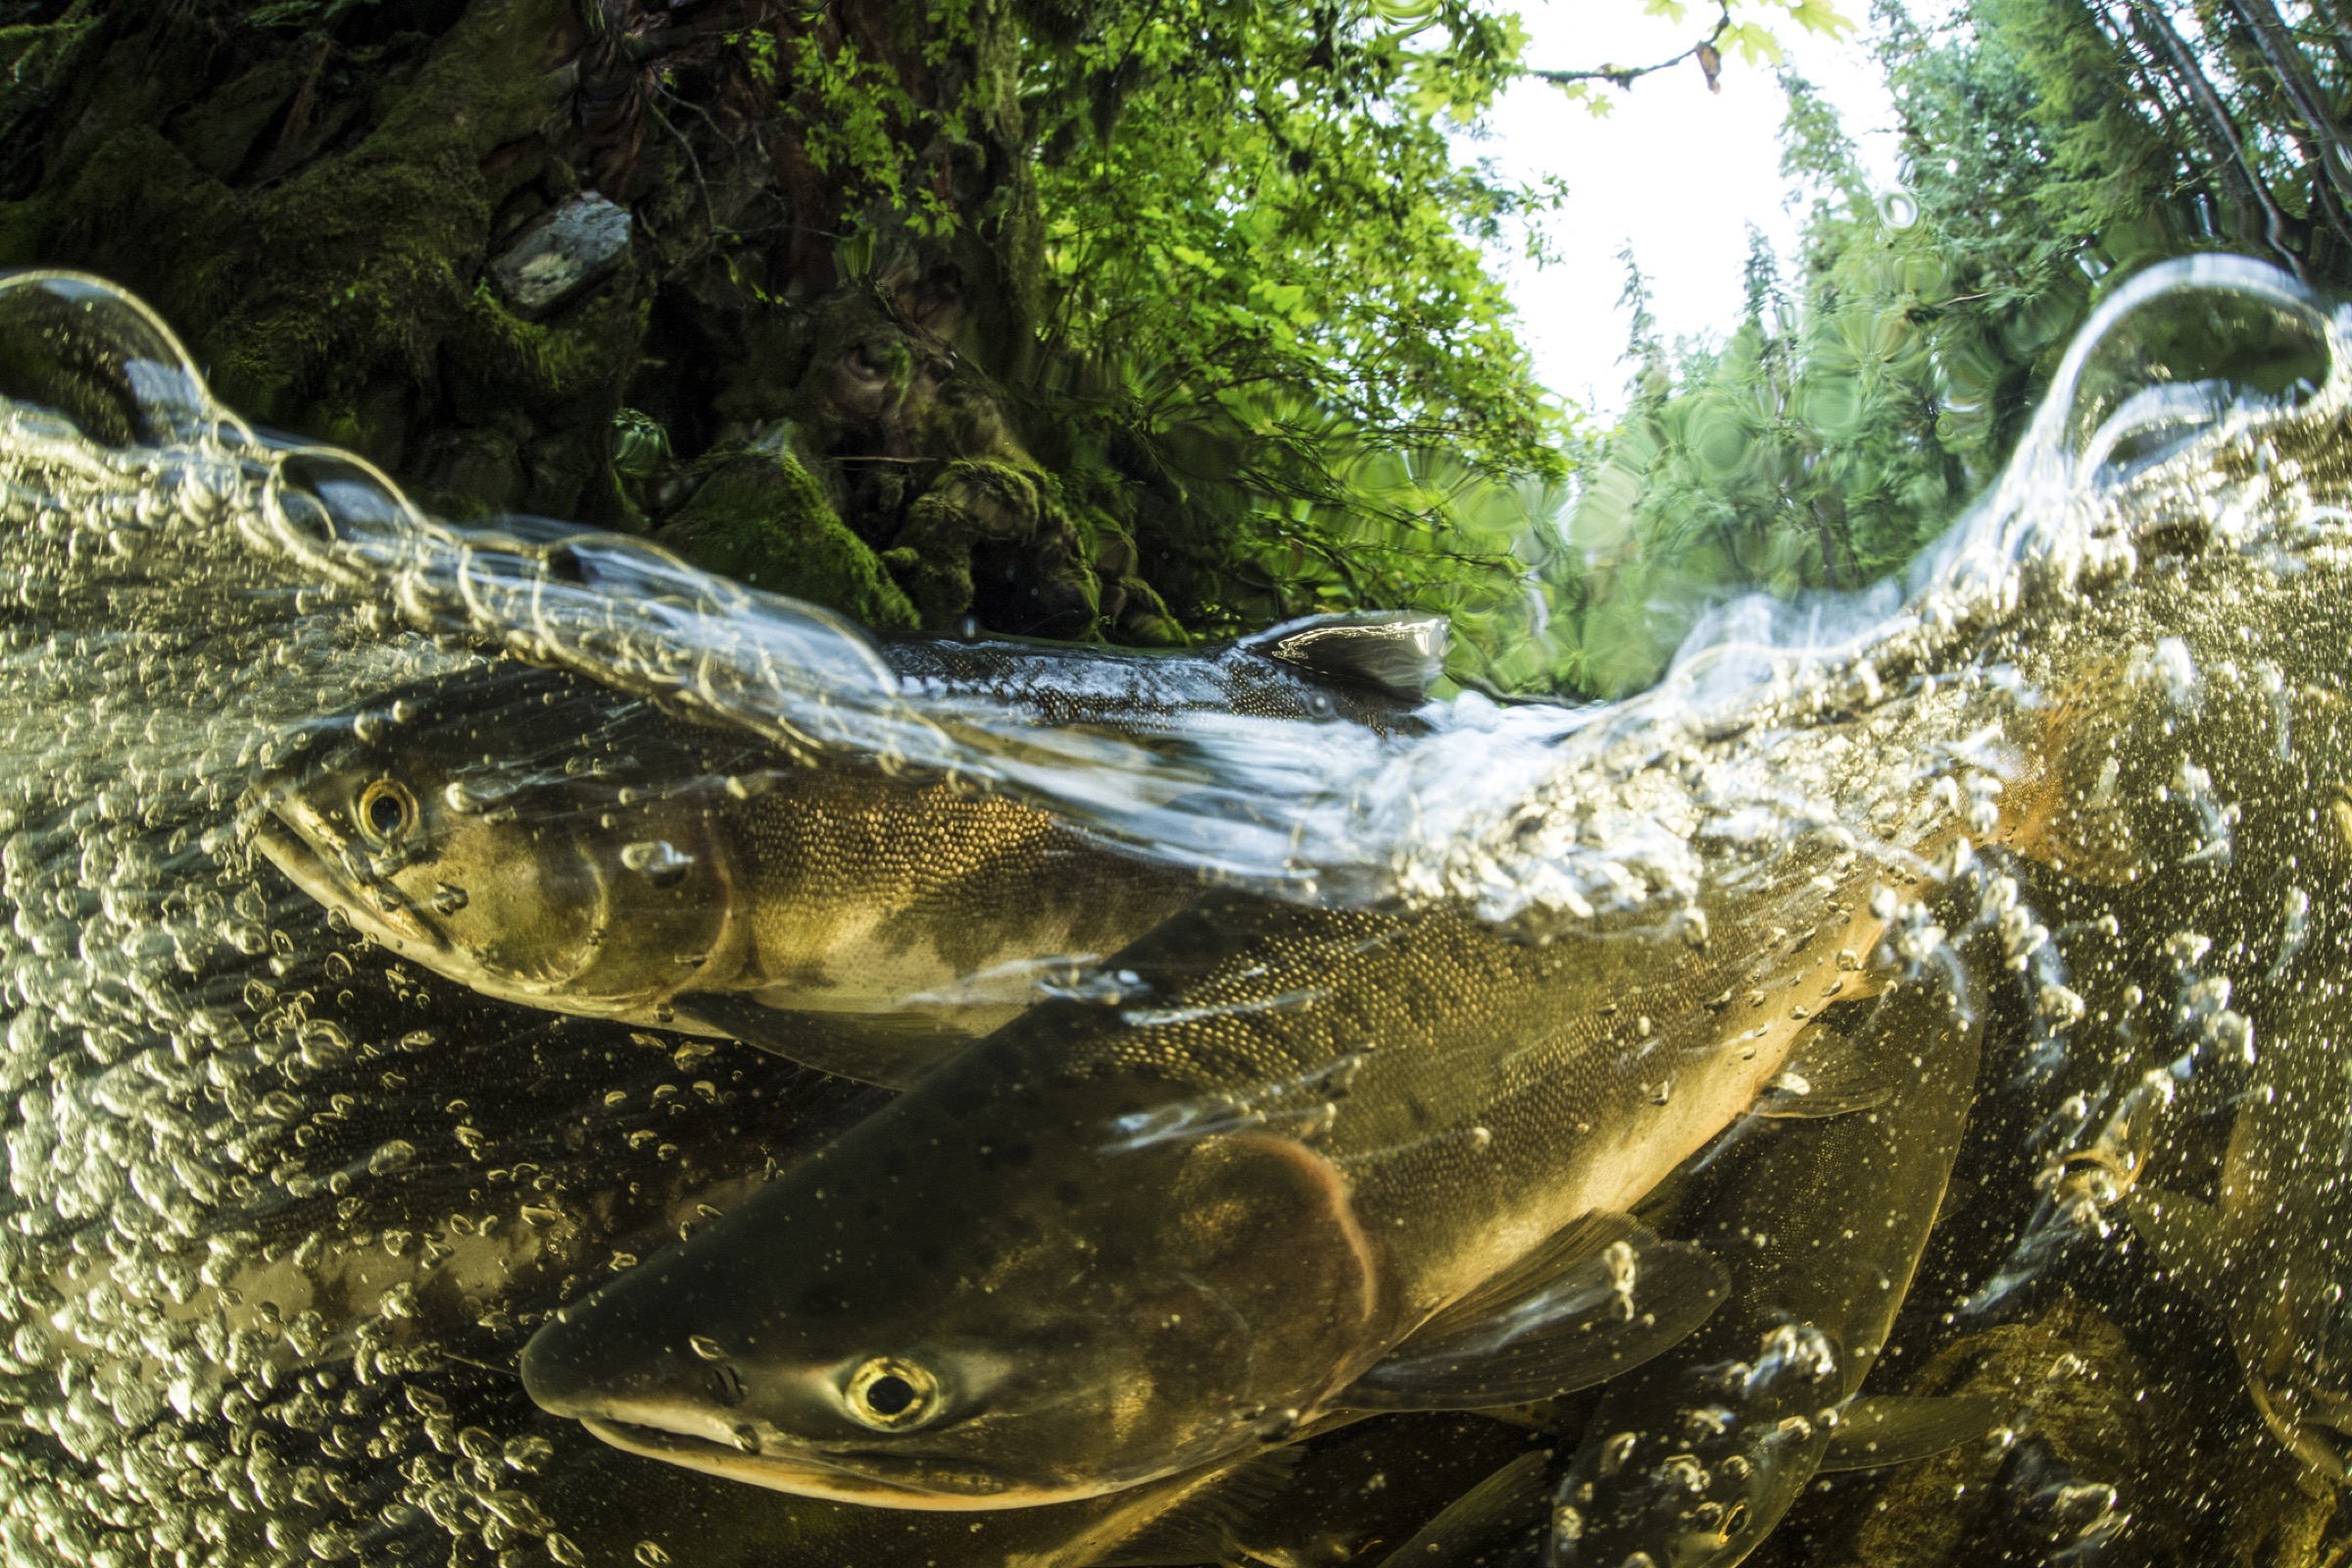 Pink salmon (Oncorhyncus gorbuscha) spawning in the Great Bear Rainforest, British Columbia, Canada—Photograph by Ian Mcallister/Getty